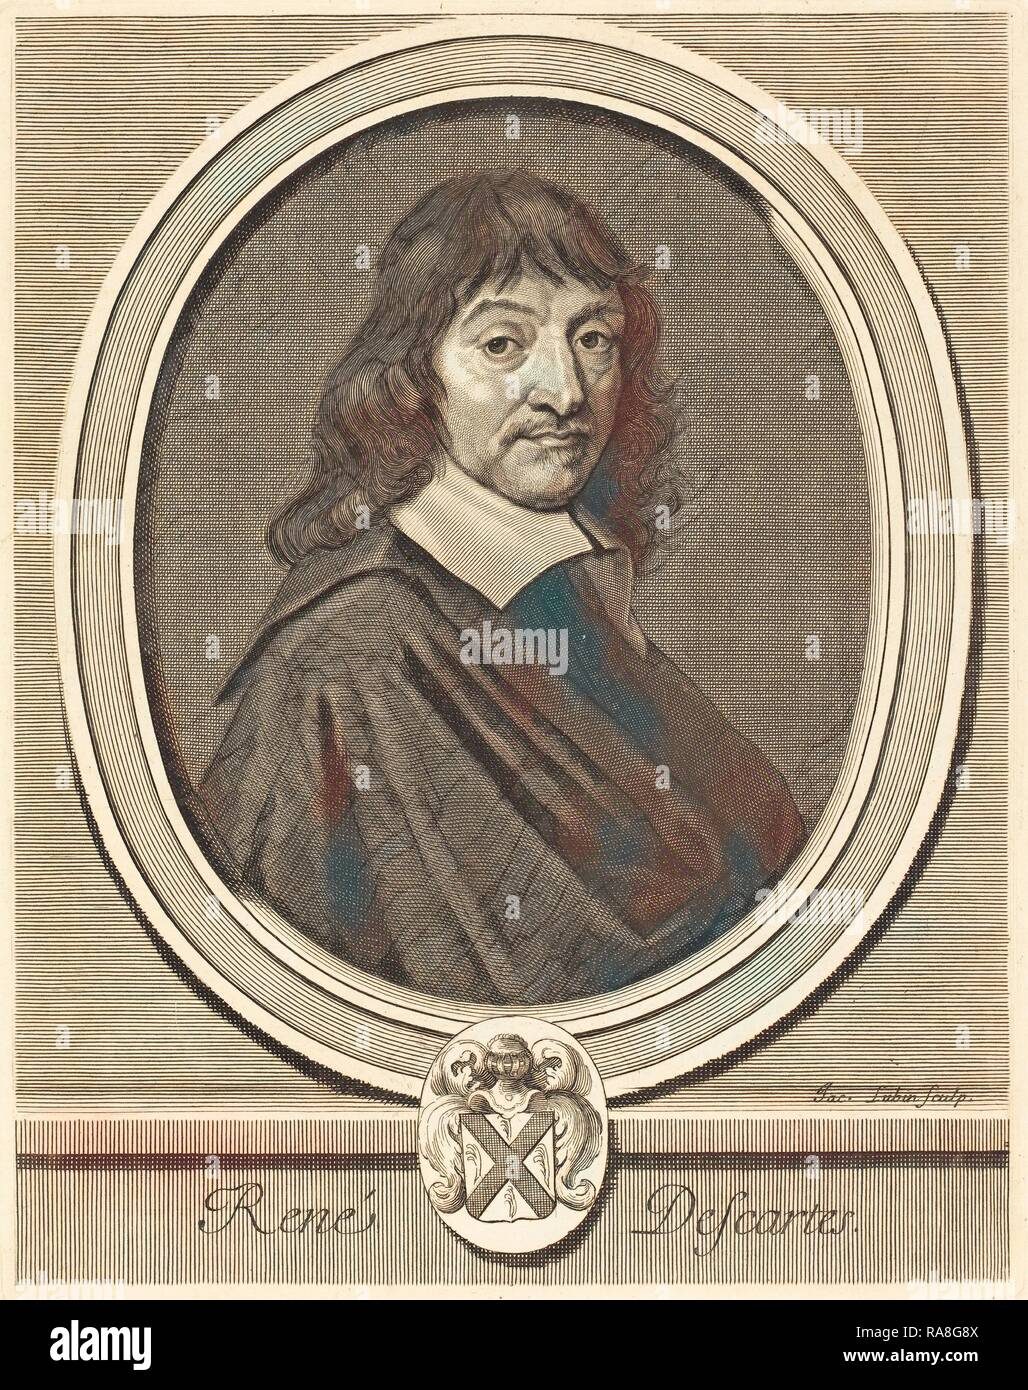 Jacques Lubin (French, c. 1659 - 1703 or after), René Descartes, engraving on laid paper. Reimagined - Stock Image